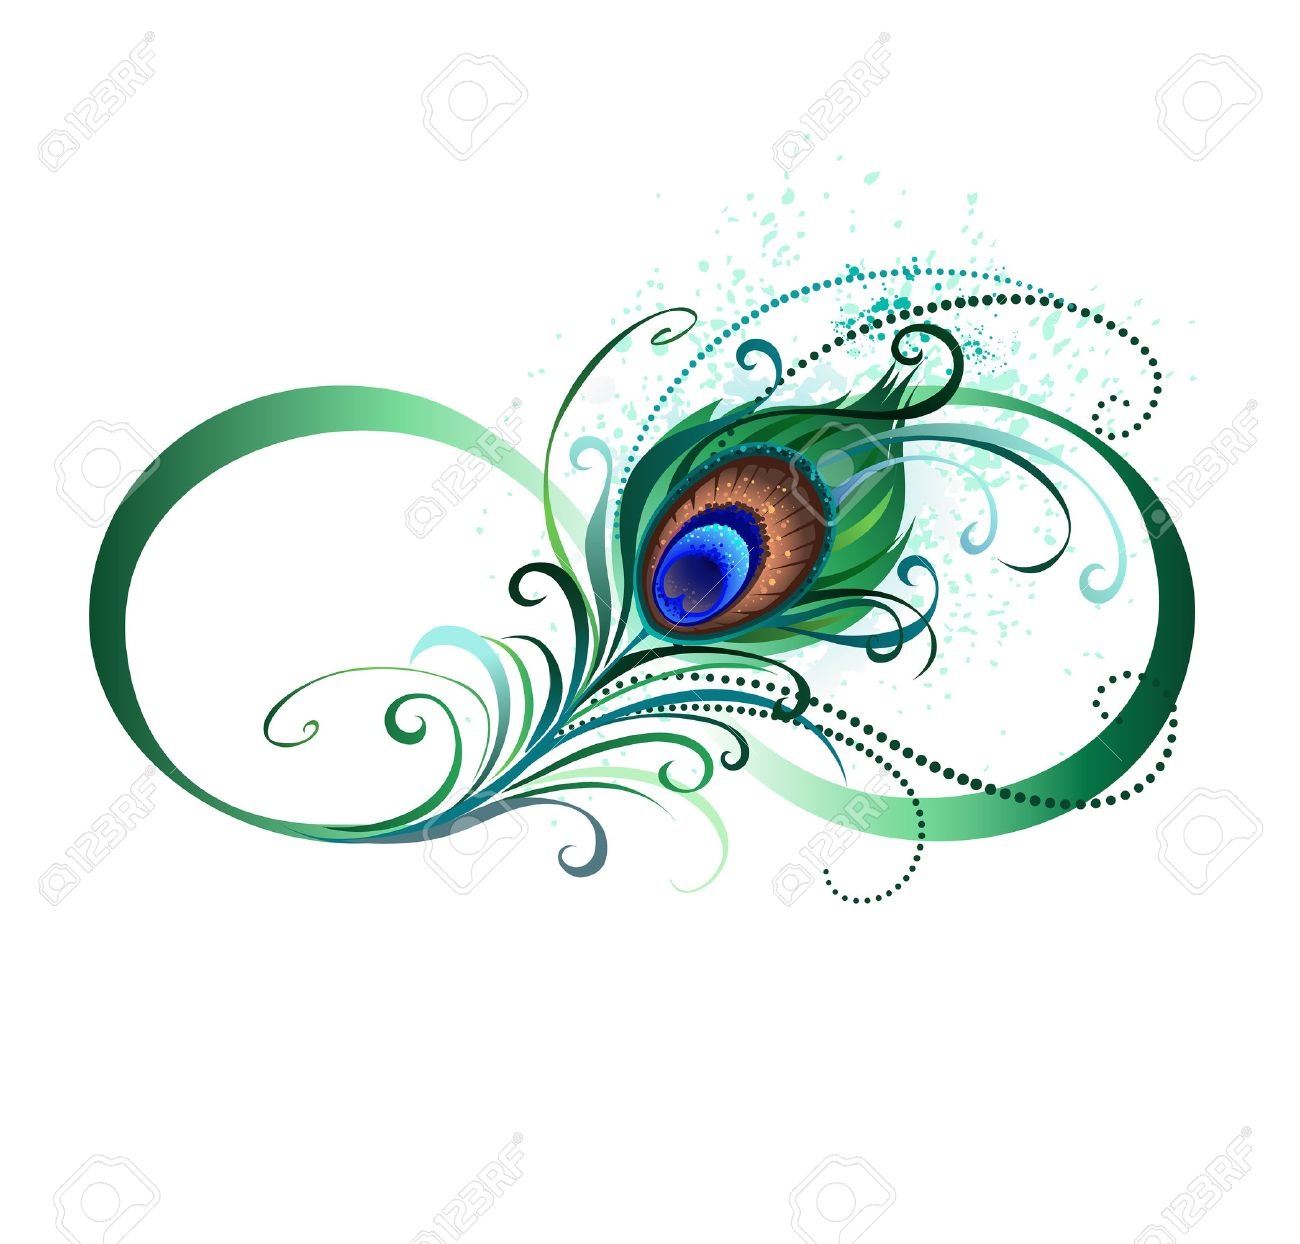 hight resolution of the symbol of infinity with a bright green artistic peacock feather on a white